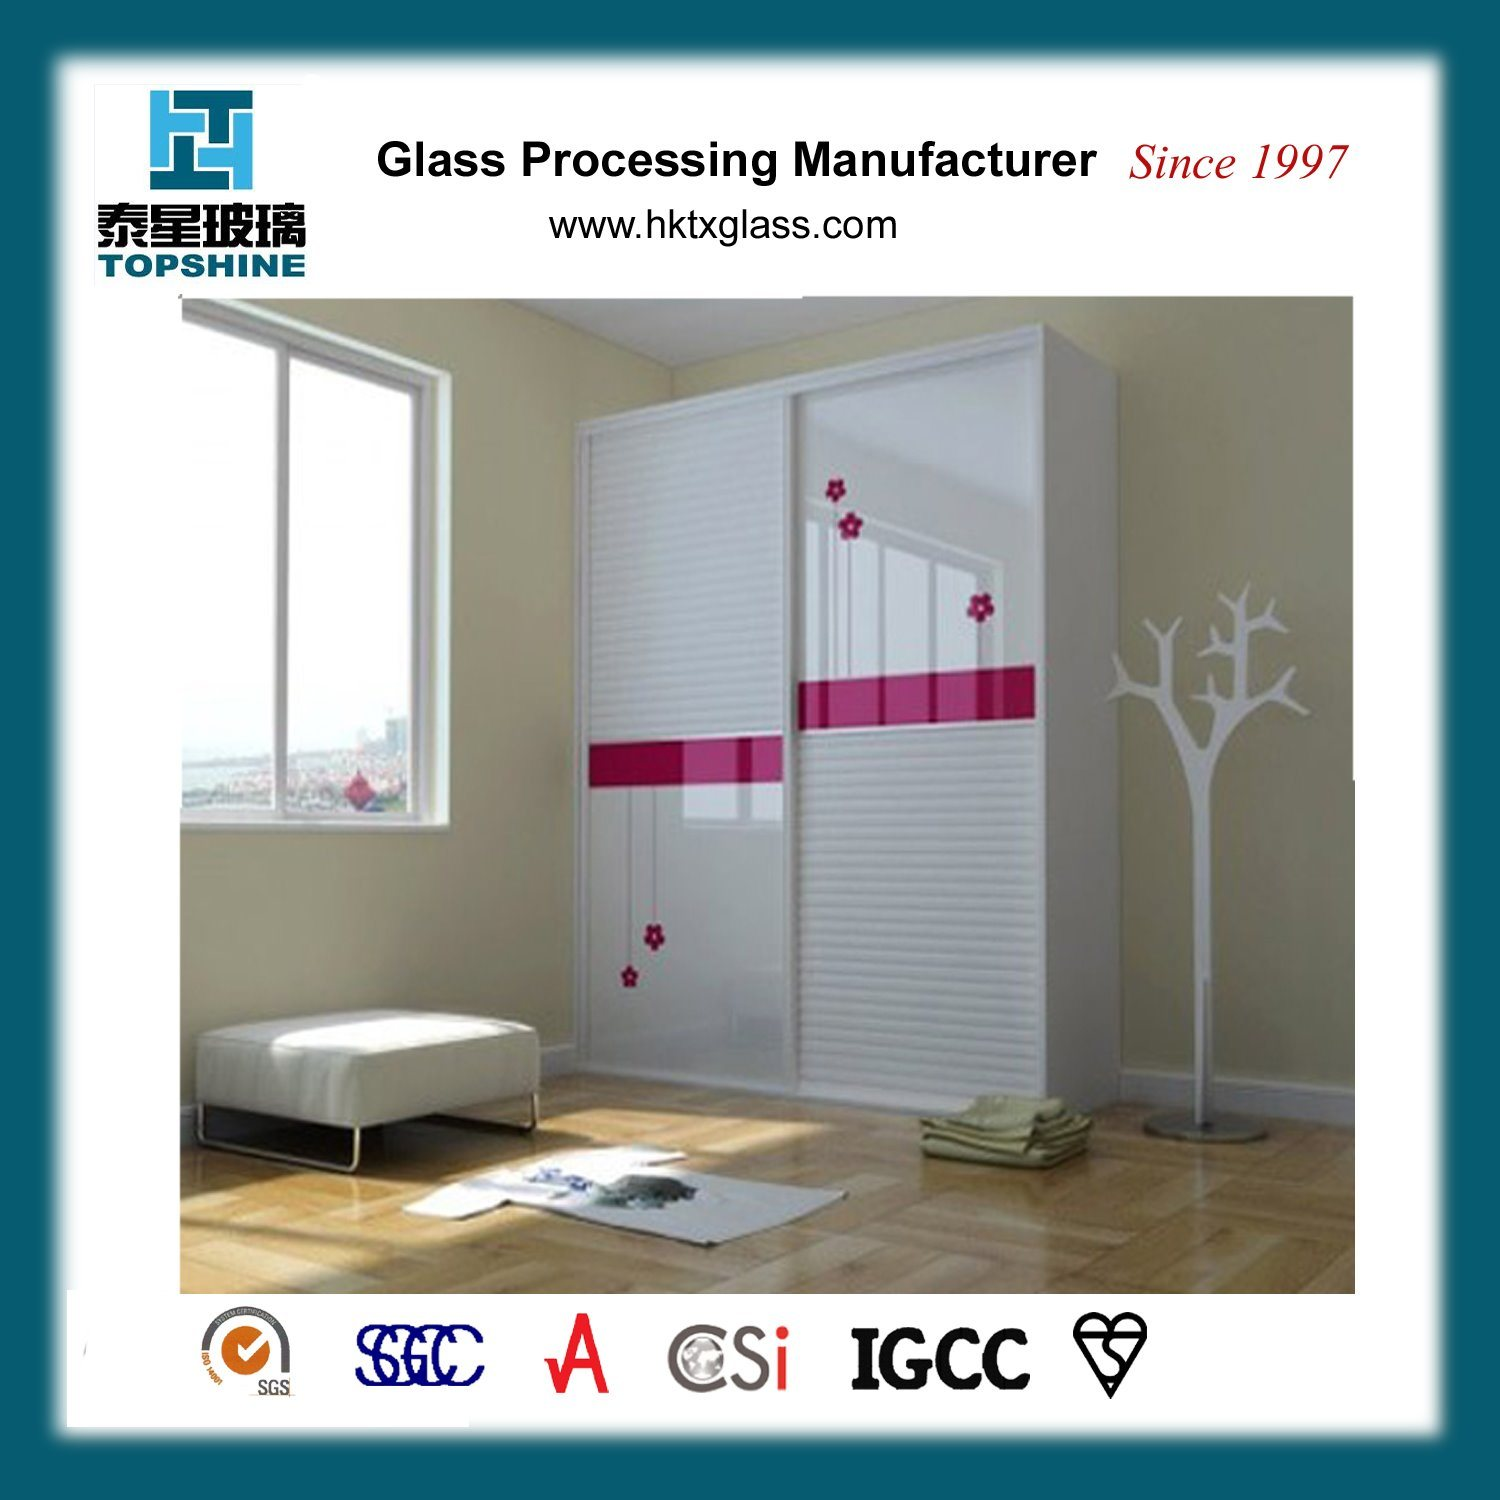 China Customized Design Silk Screen Printing Glass Wardrobe Door For Bedroom Furniture China Glass Wardrobe Door Wardrobe Door